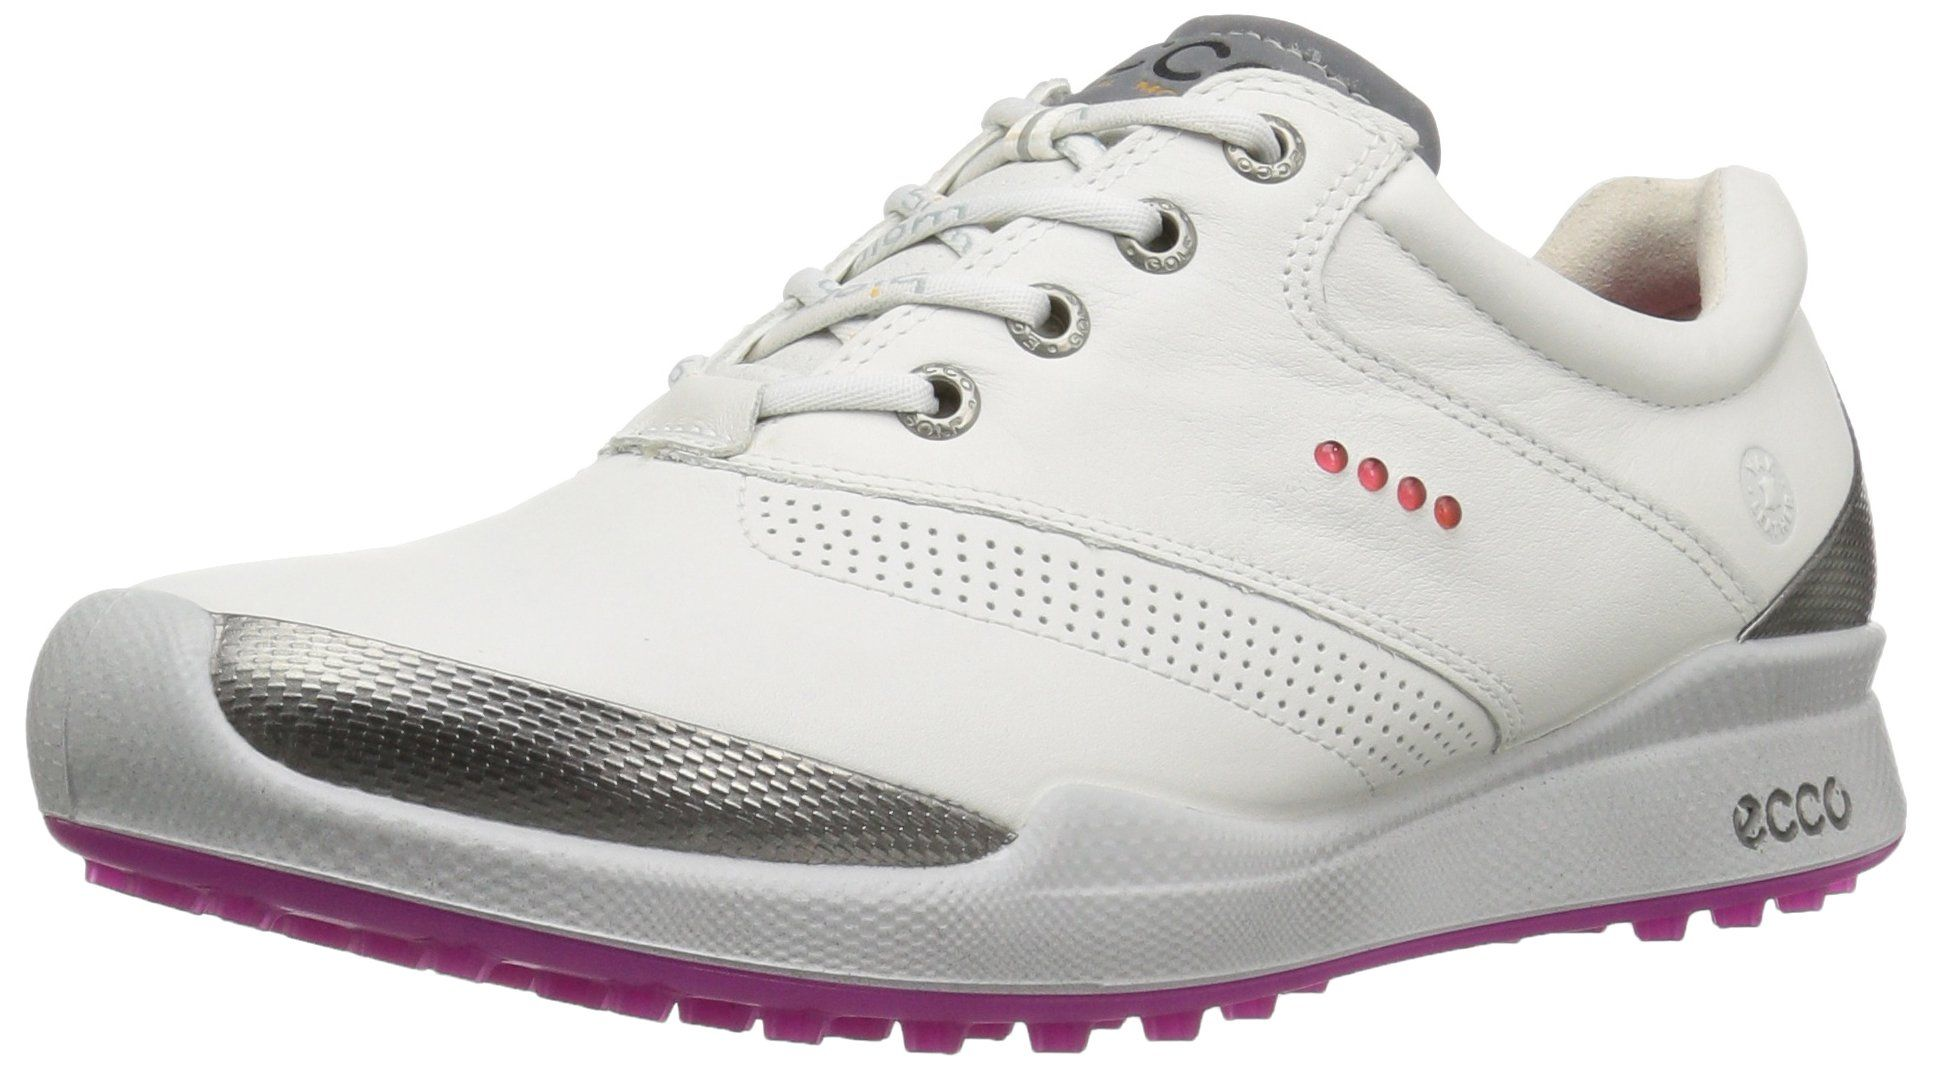 ECCO Women's Biom Hybrid Hydromax Golf Shoe, White/Candy, 39 EU/8